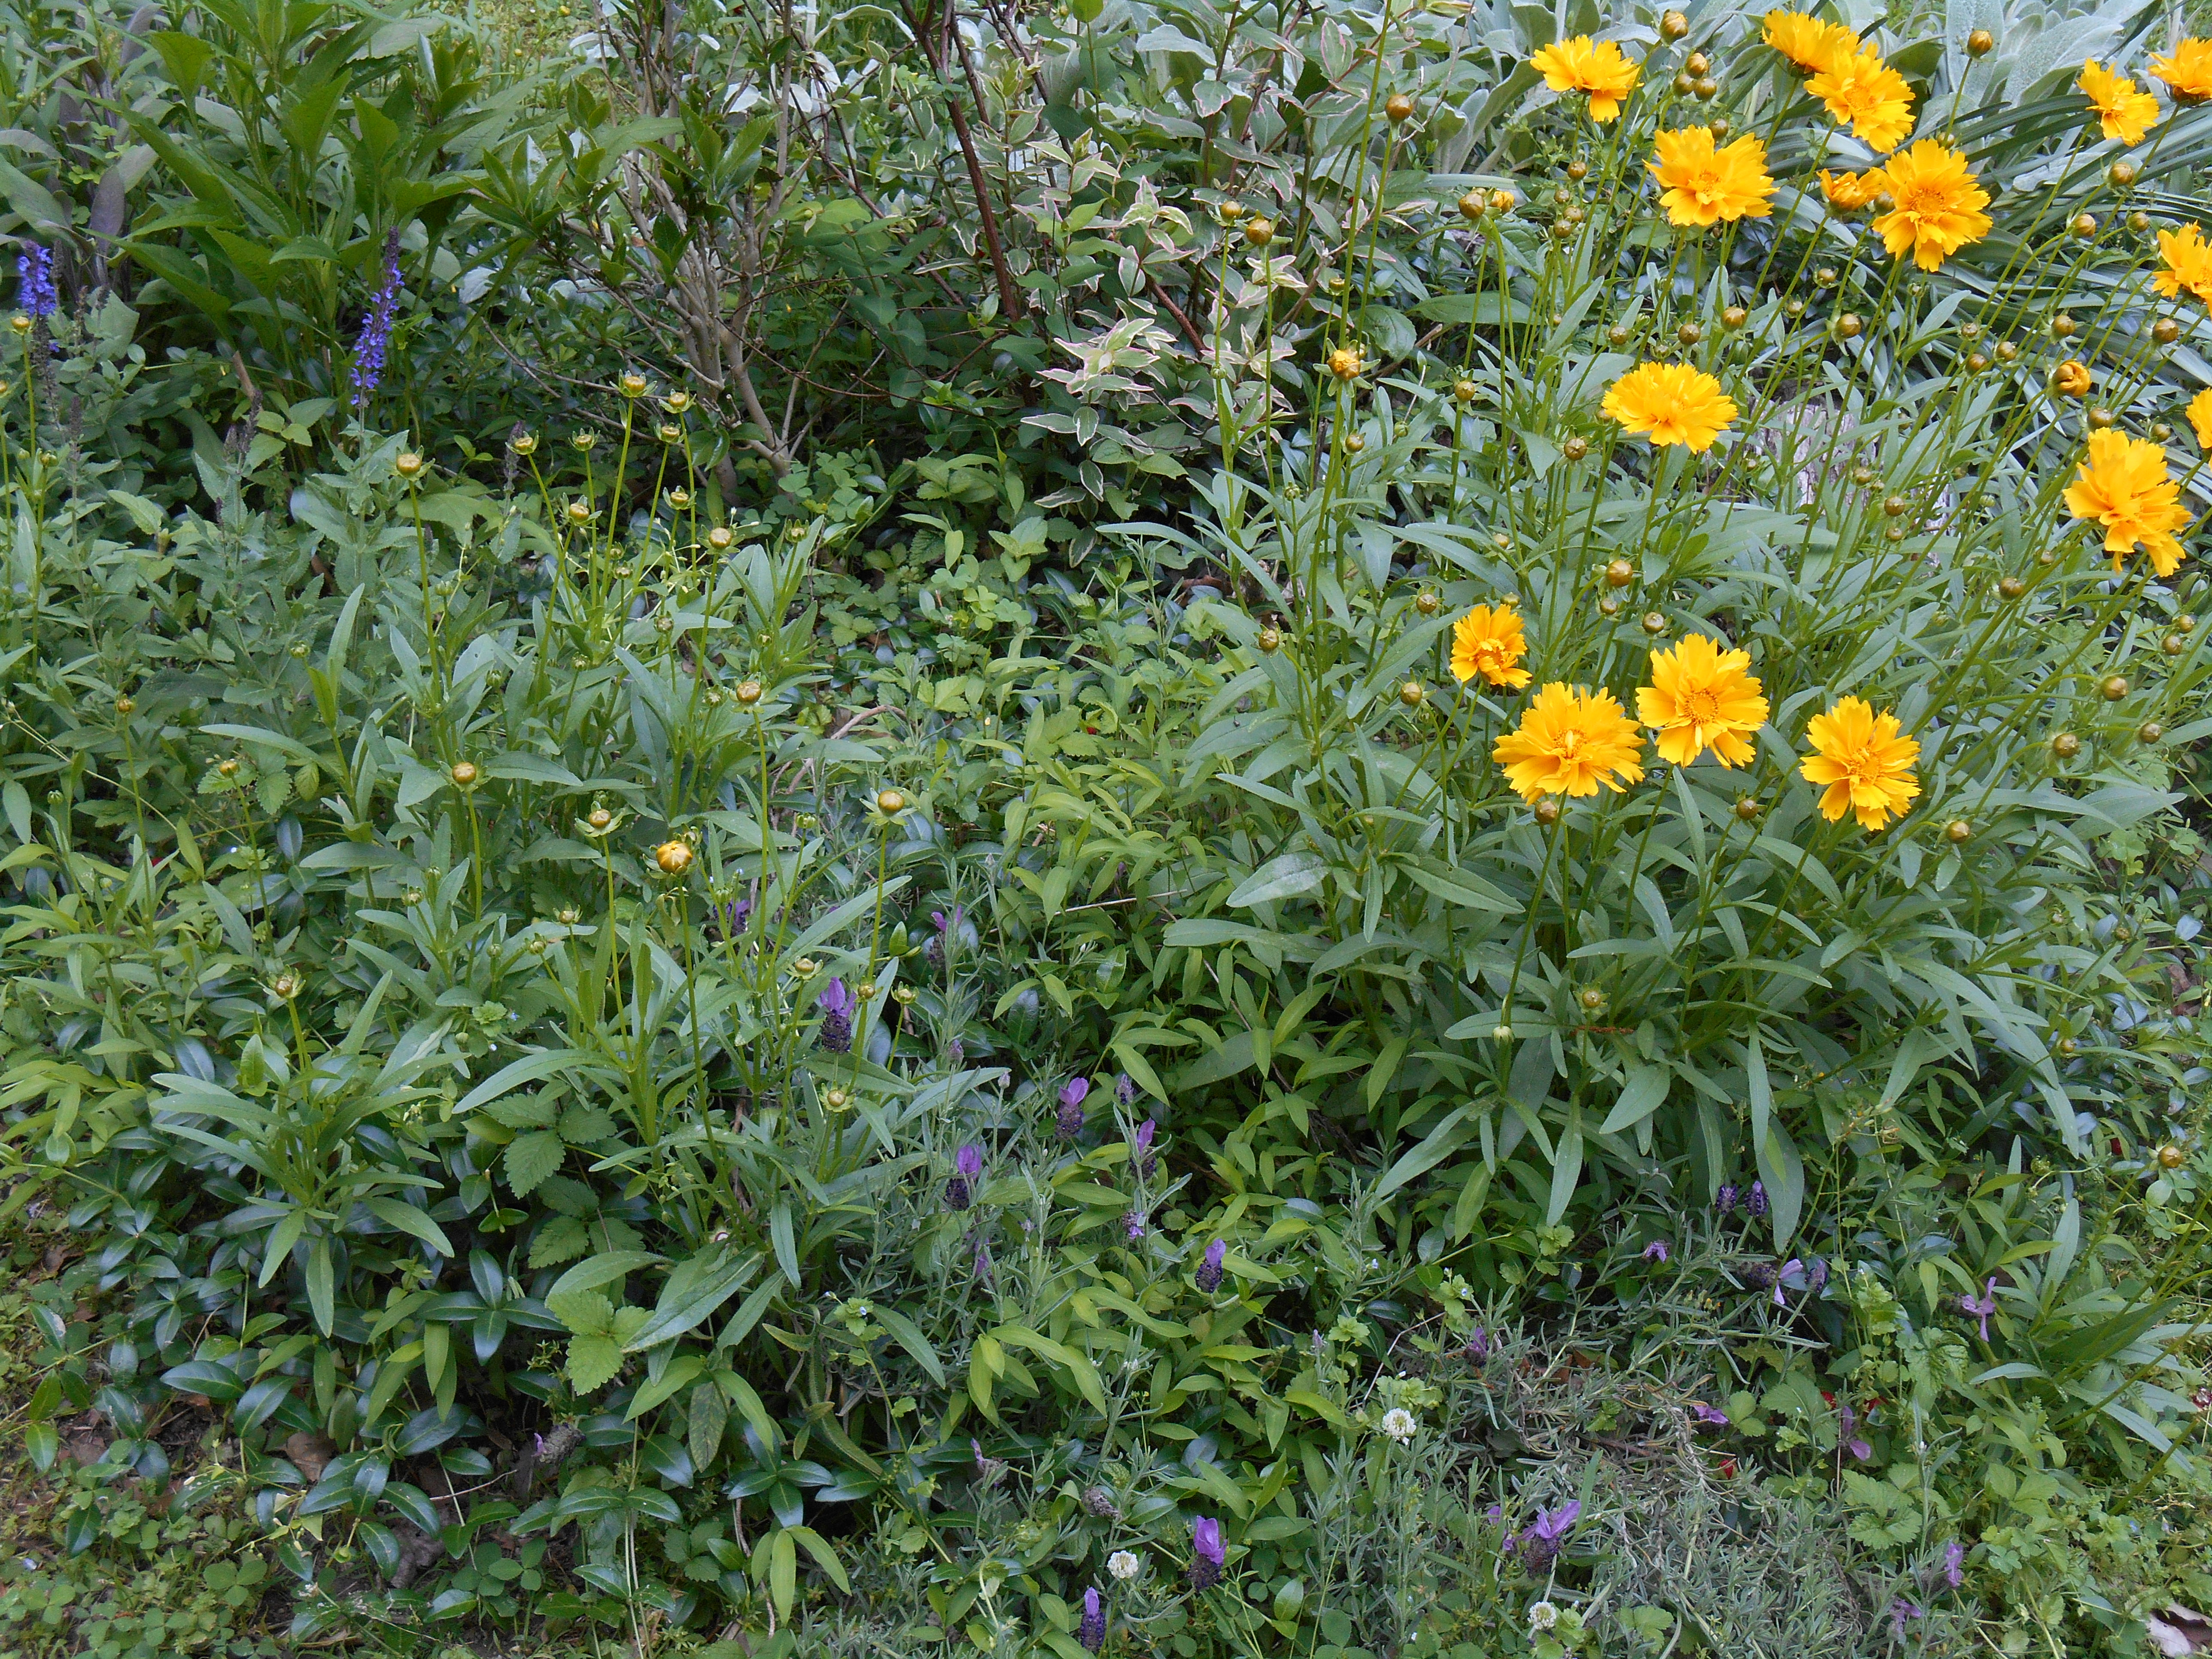 Newly planted in 2013, this perennial bed has grown into a vibrant community of plants.